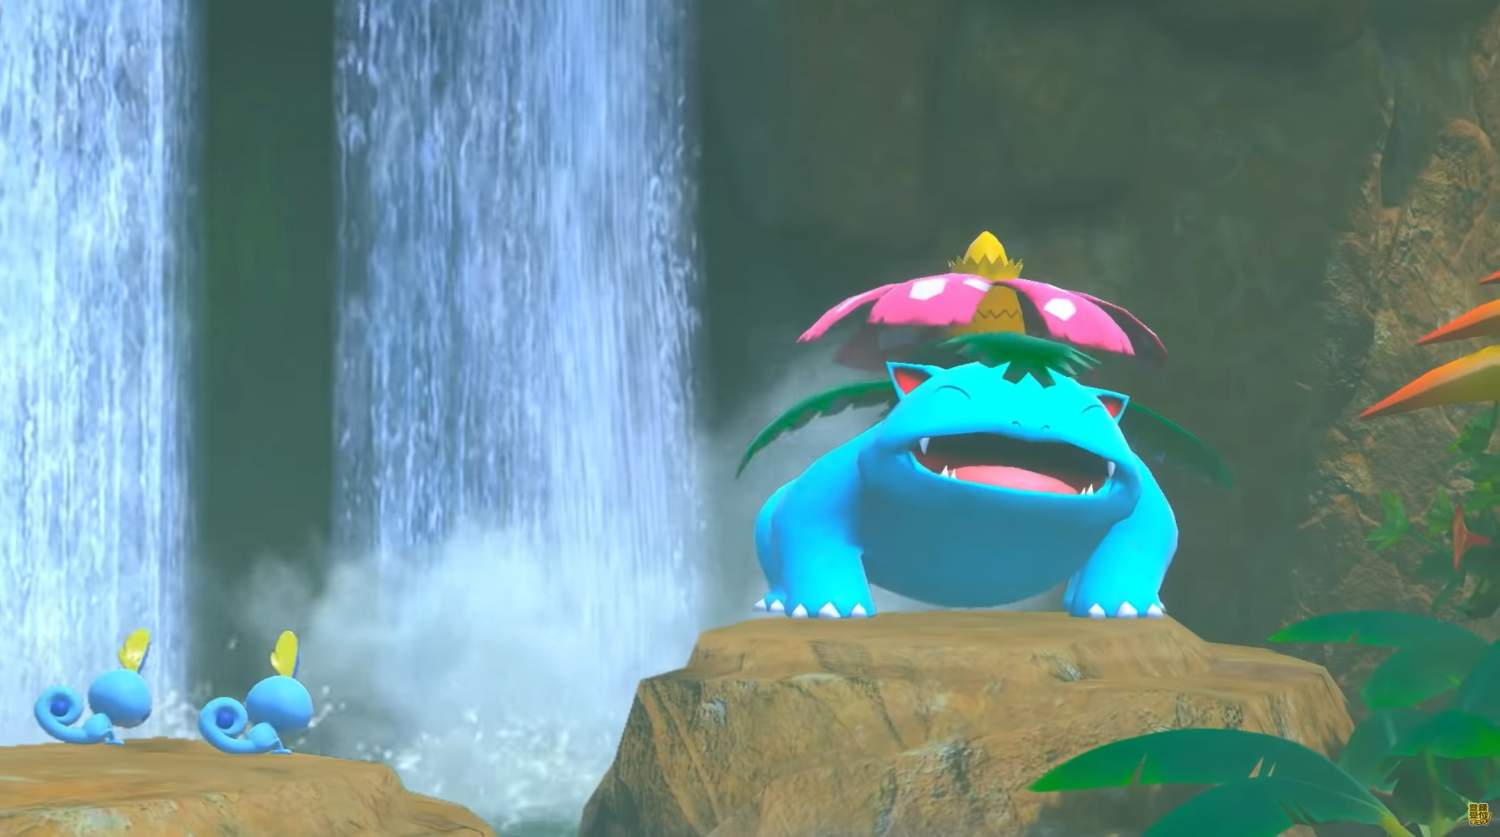 A Venusaur is just chilling outside.